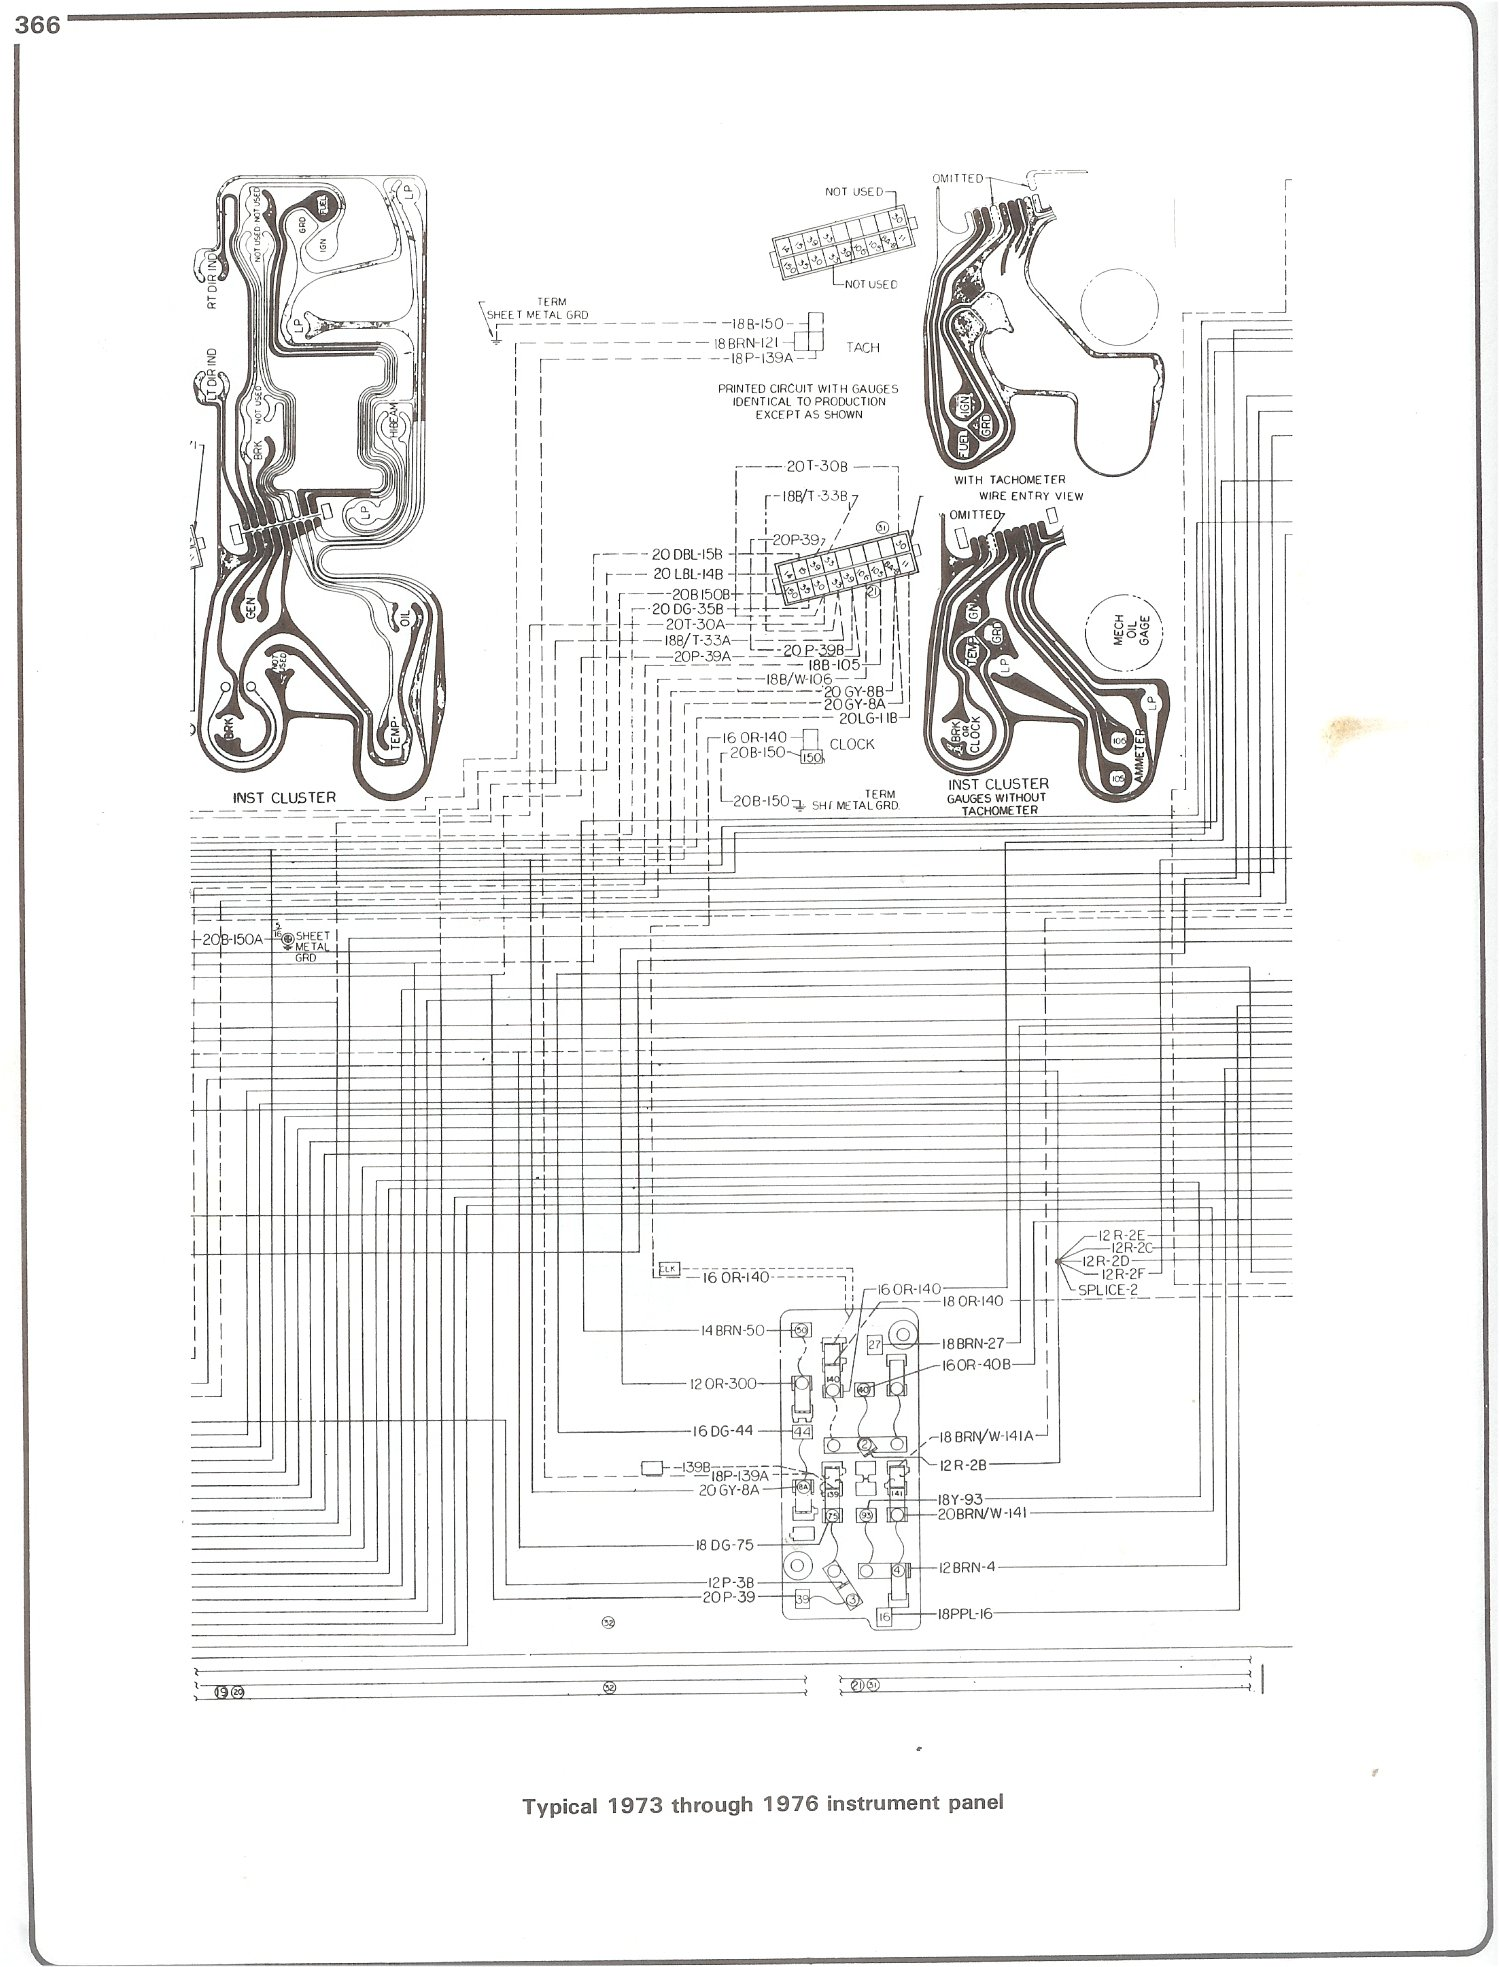 73 76_instrument complete 73 87 wiring diagrams 1986 chevy k10 wiring harness at gsmportal.co